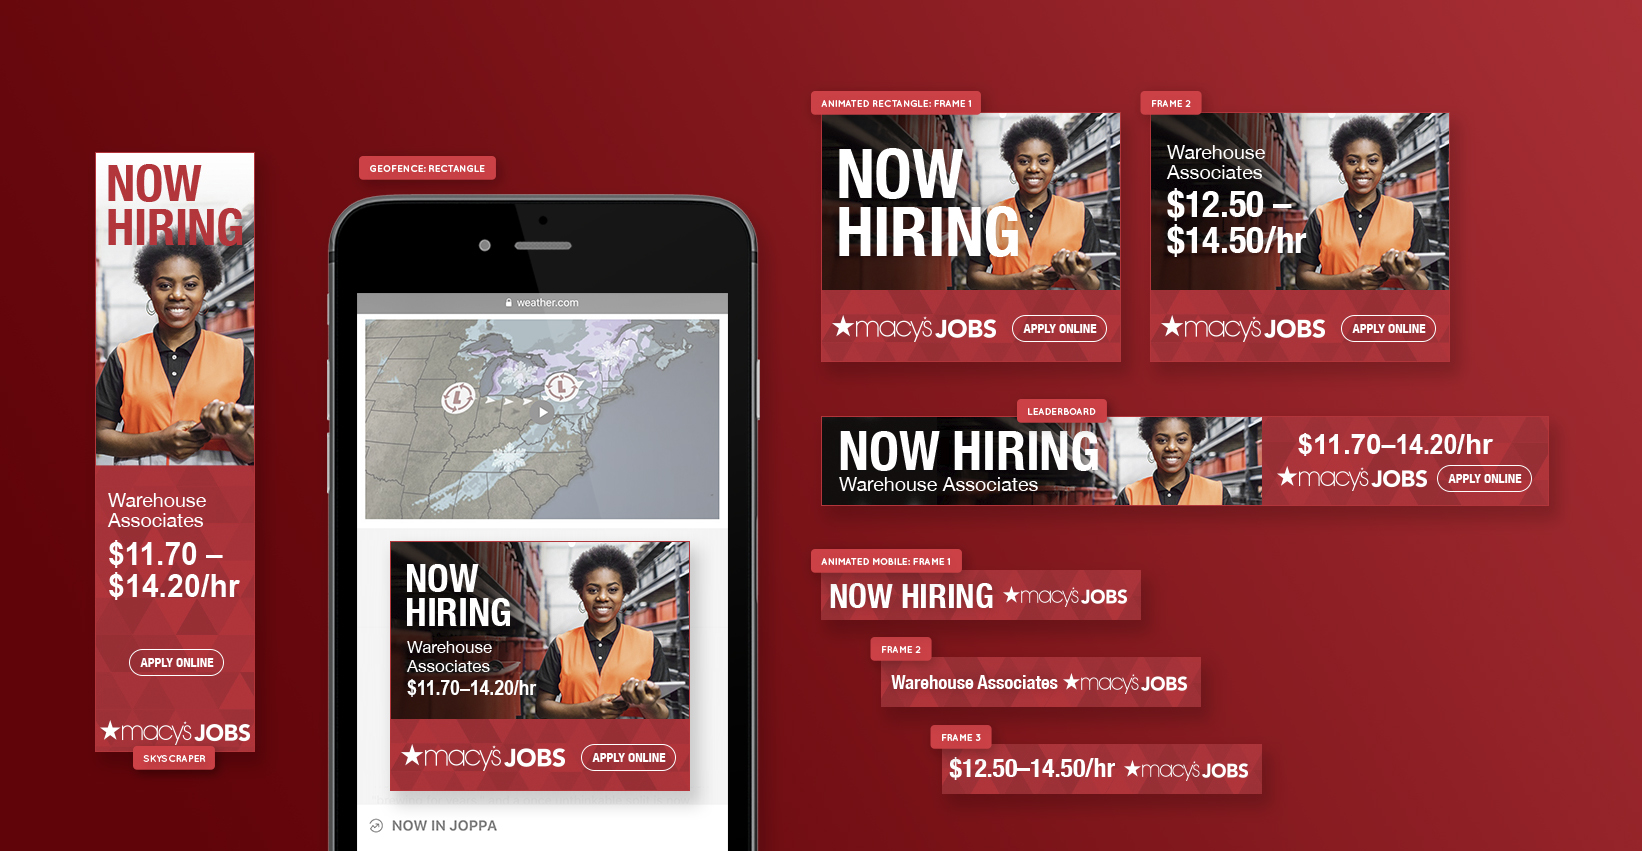 Now Hiring Digital Campaign for Macy's